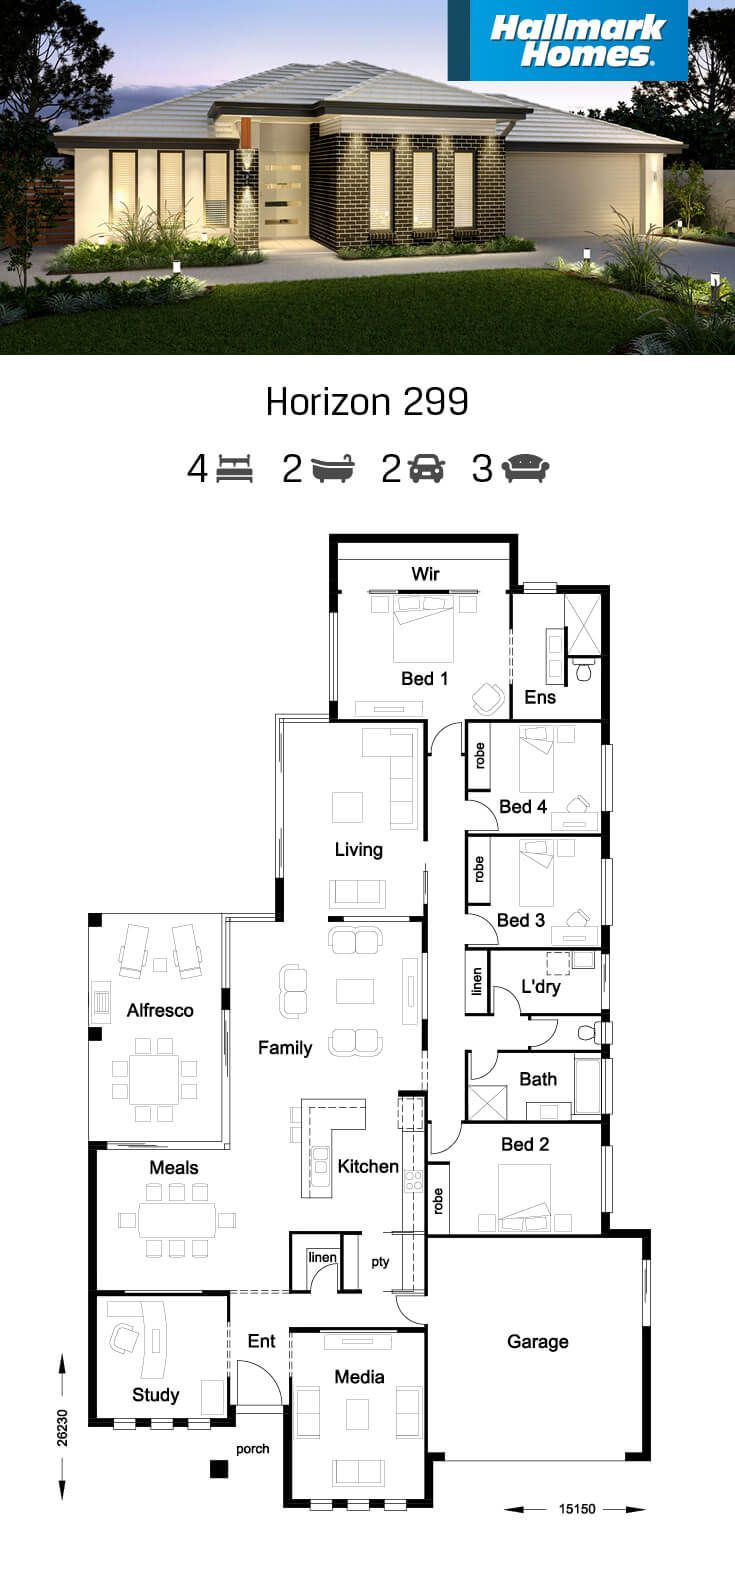 There Is Plenty Of Room For A Growing Family In The Horizon 299 The Design Features Fou Home Design Floor Plans Four Bedroom House Plans Courtyard House Plans